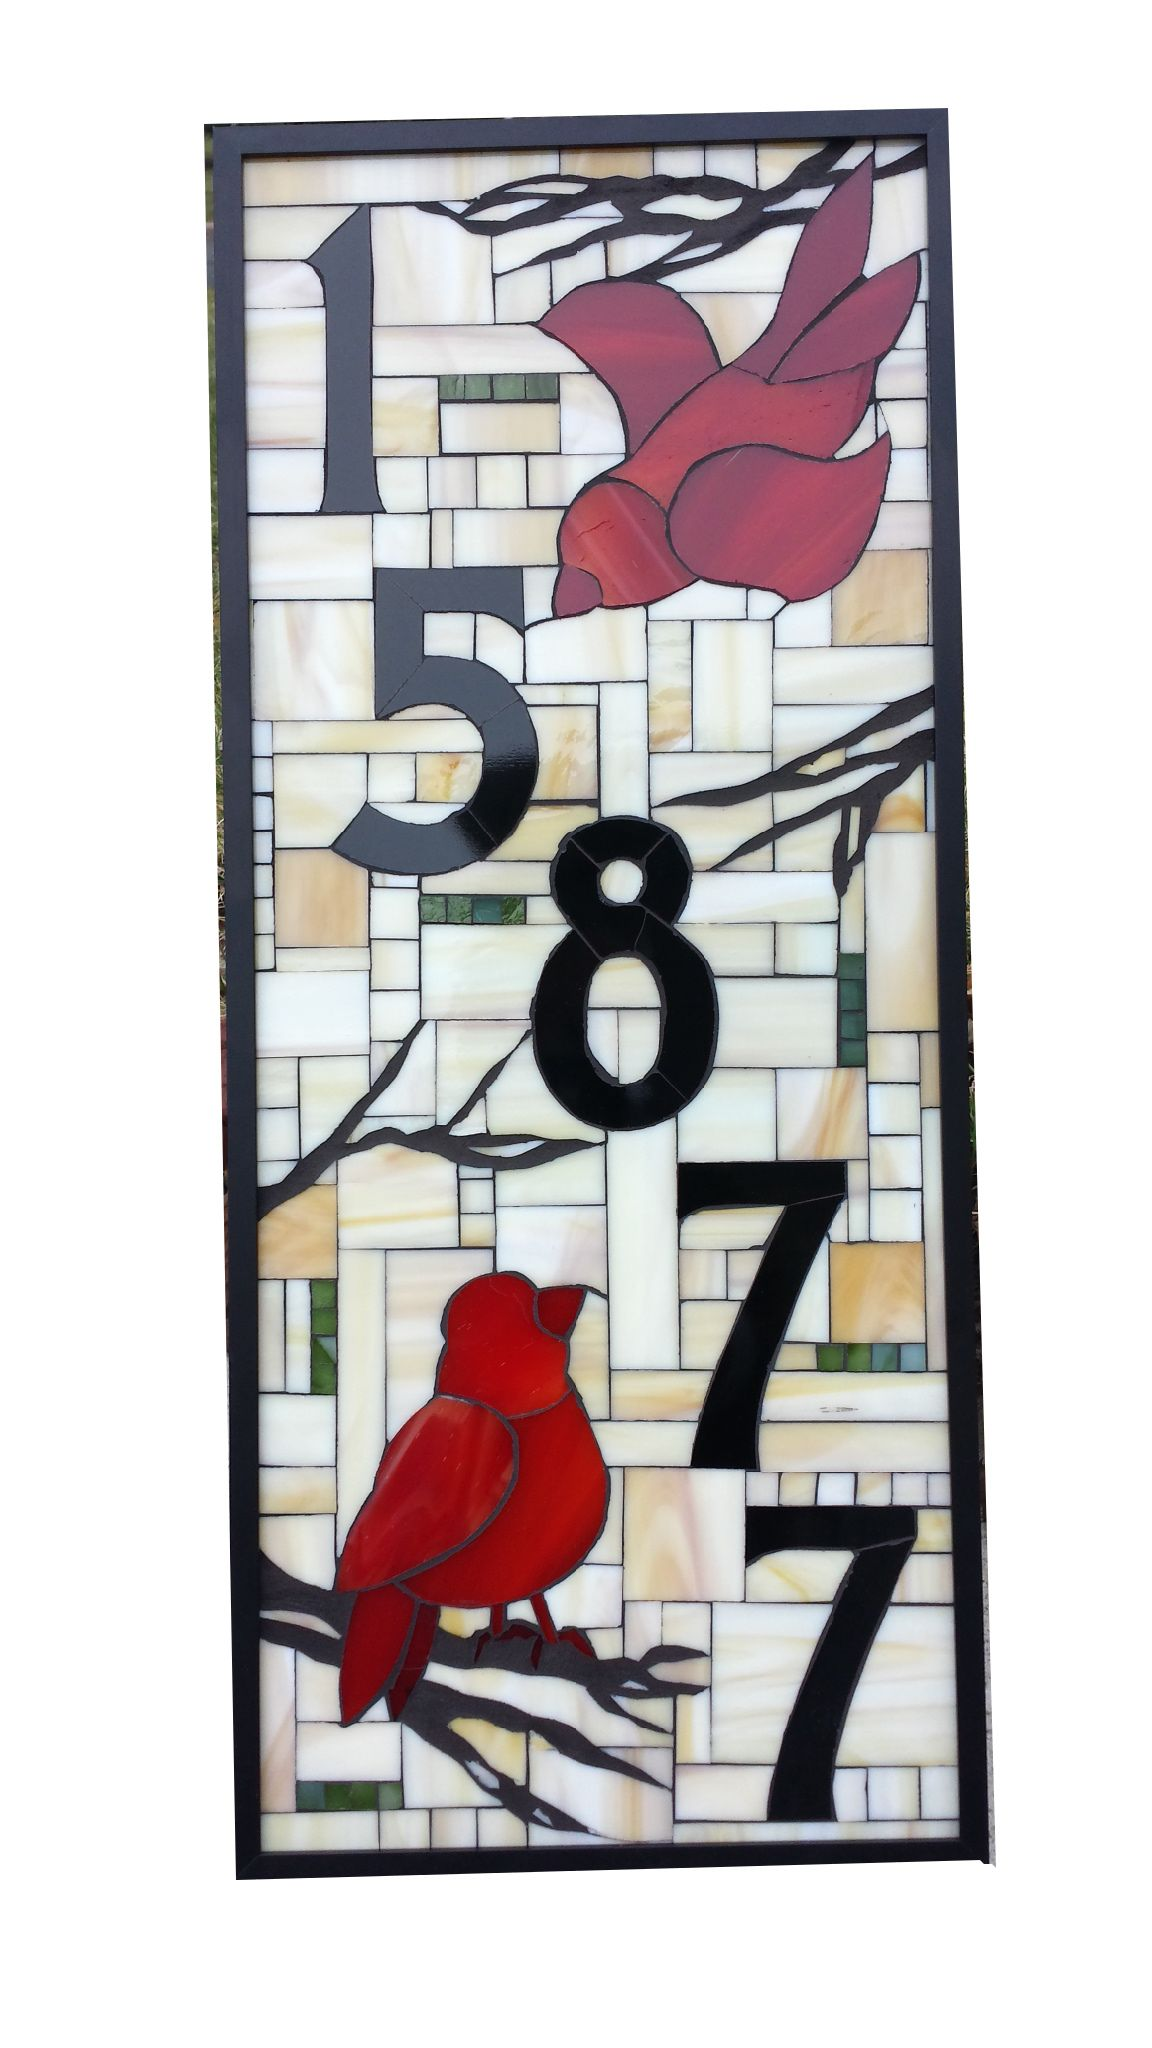 Custom Stained Glass House Number With Red Birds By Sequential Glass Art  Mosaic